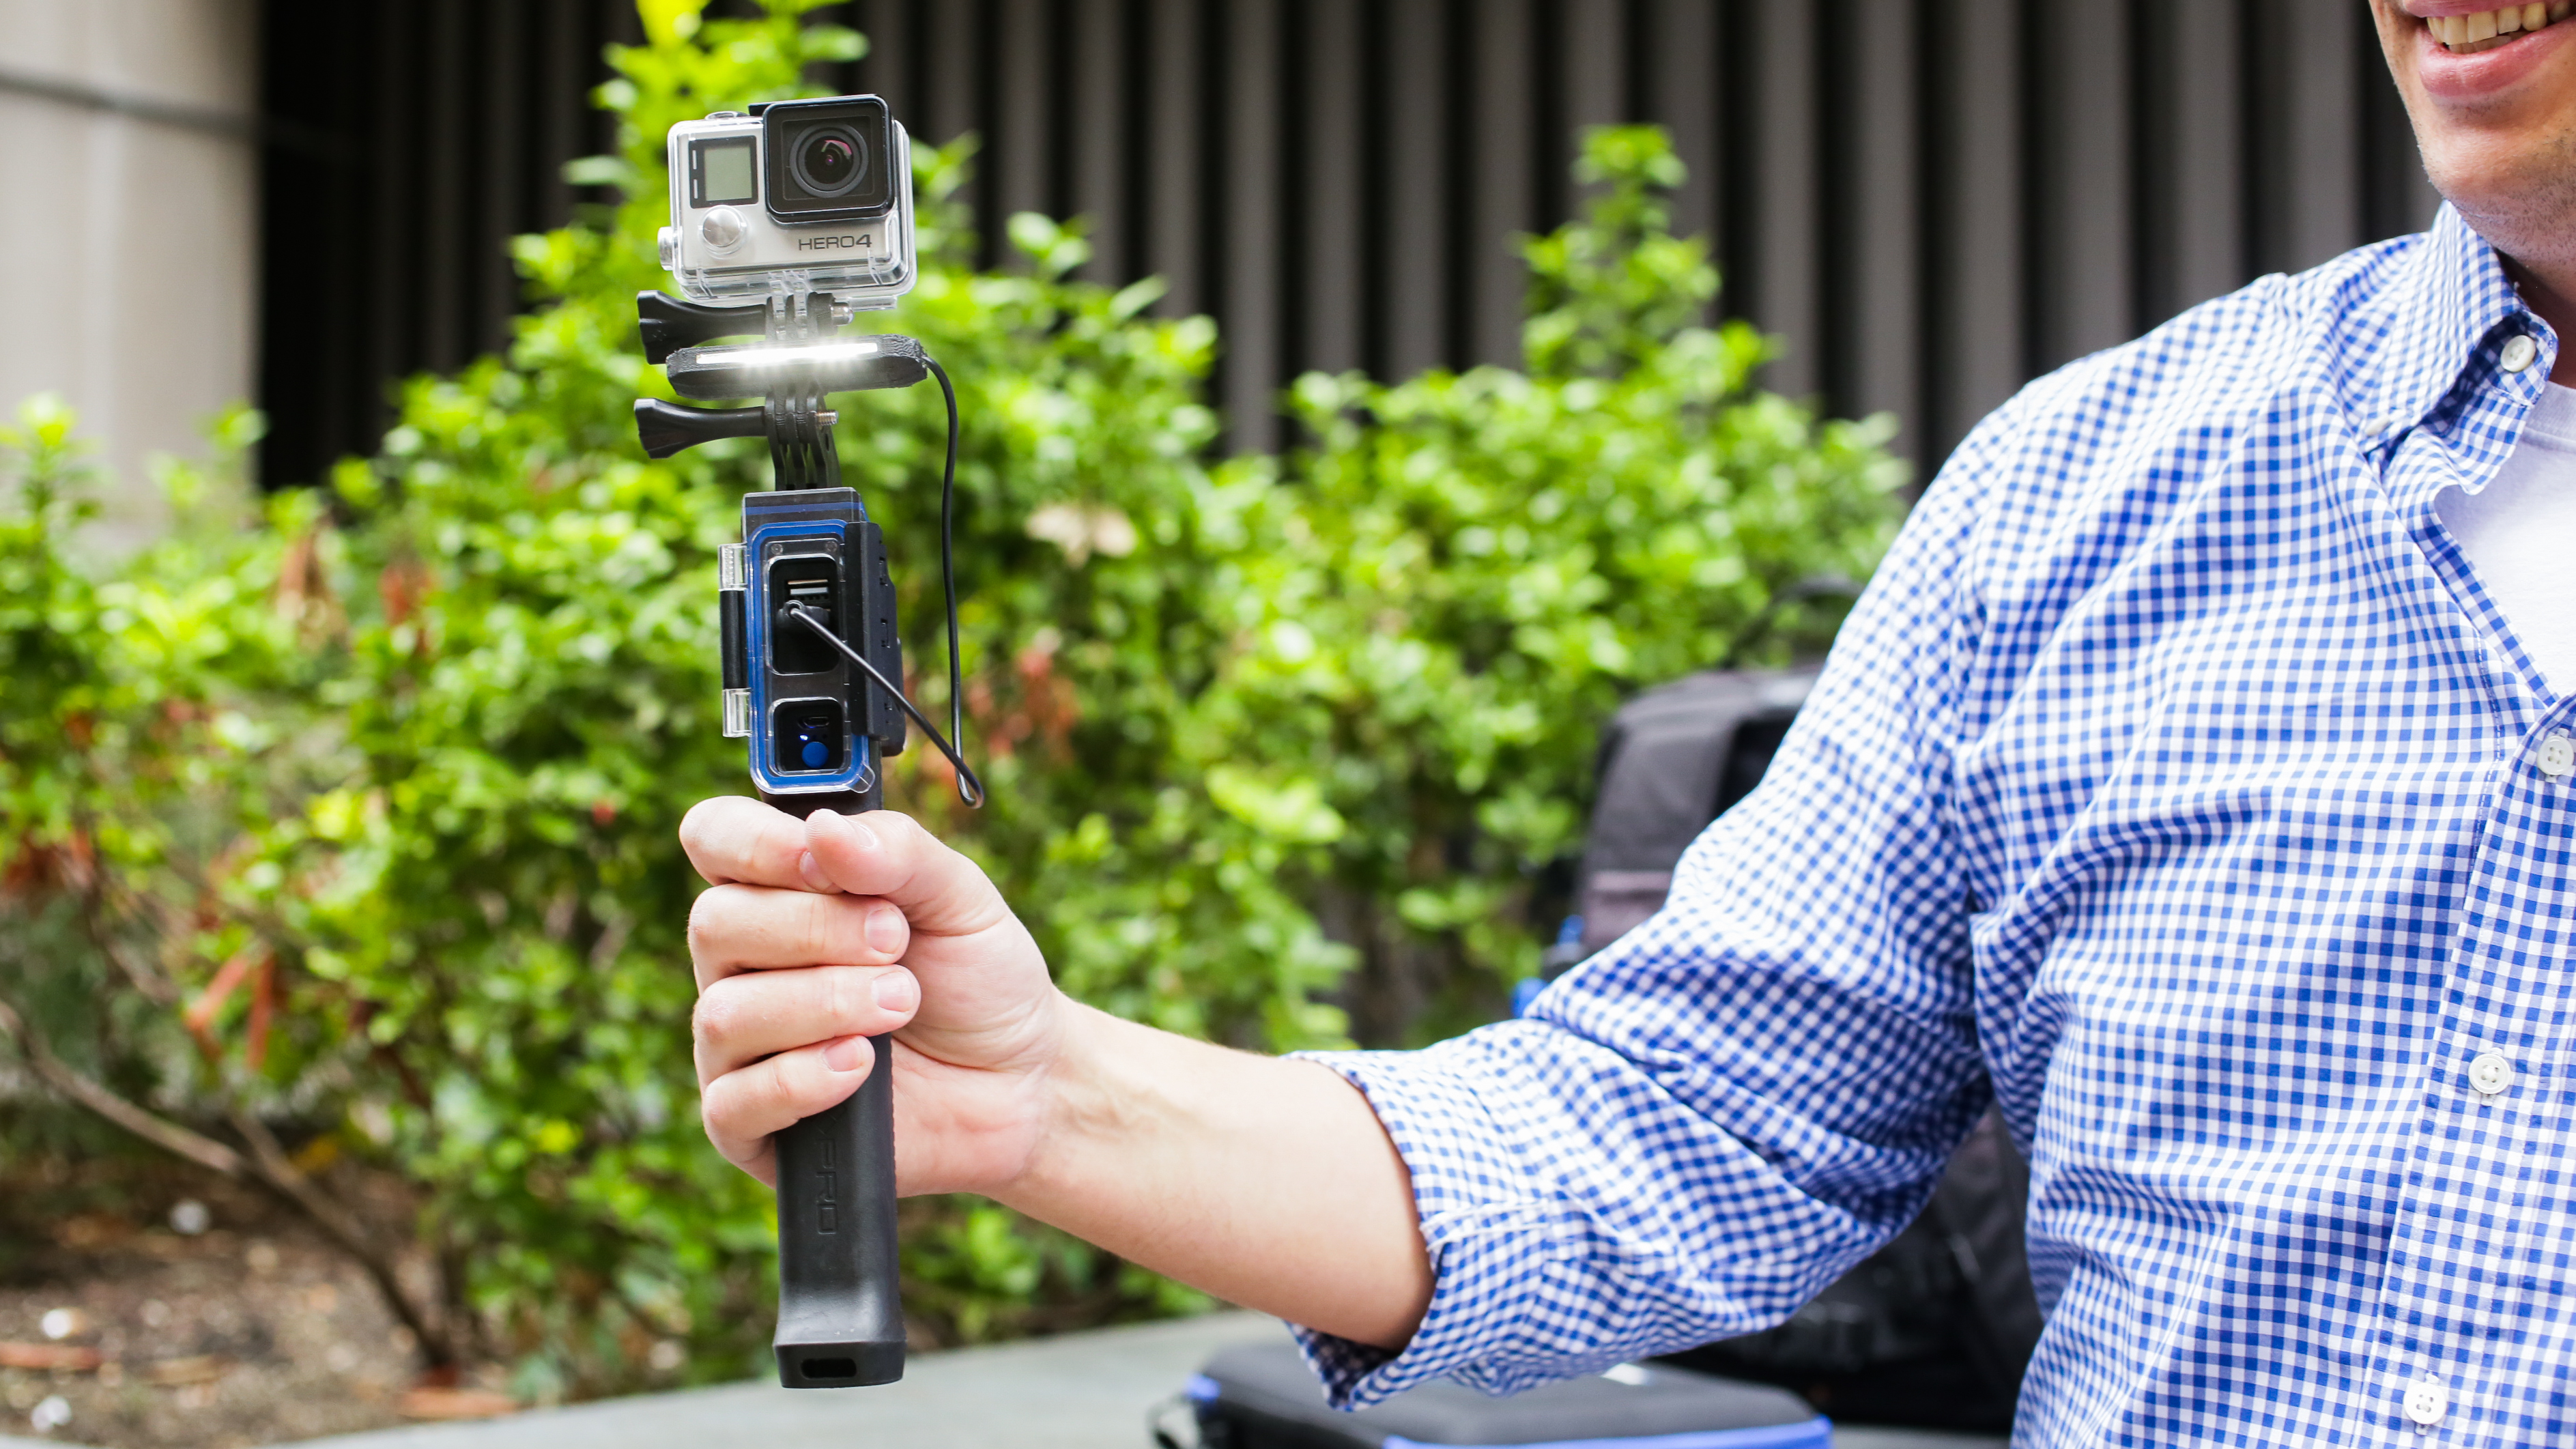 More than just a selfie stick